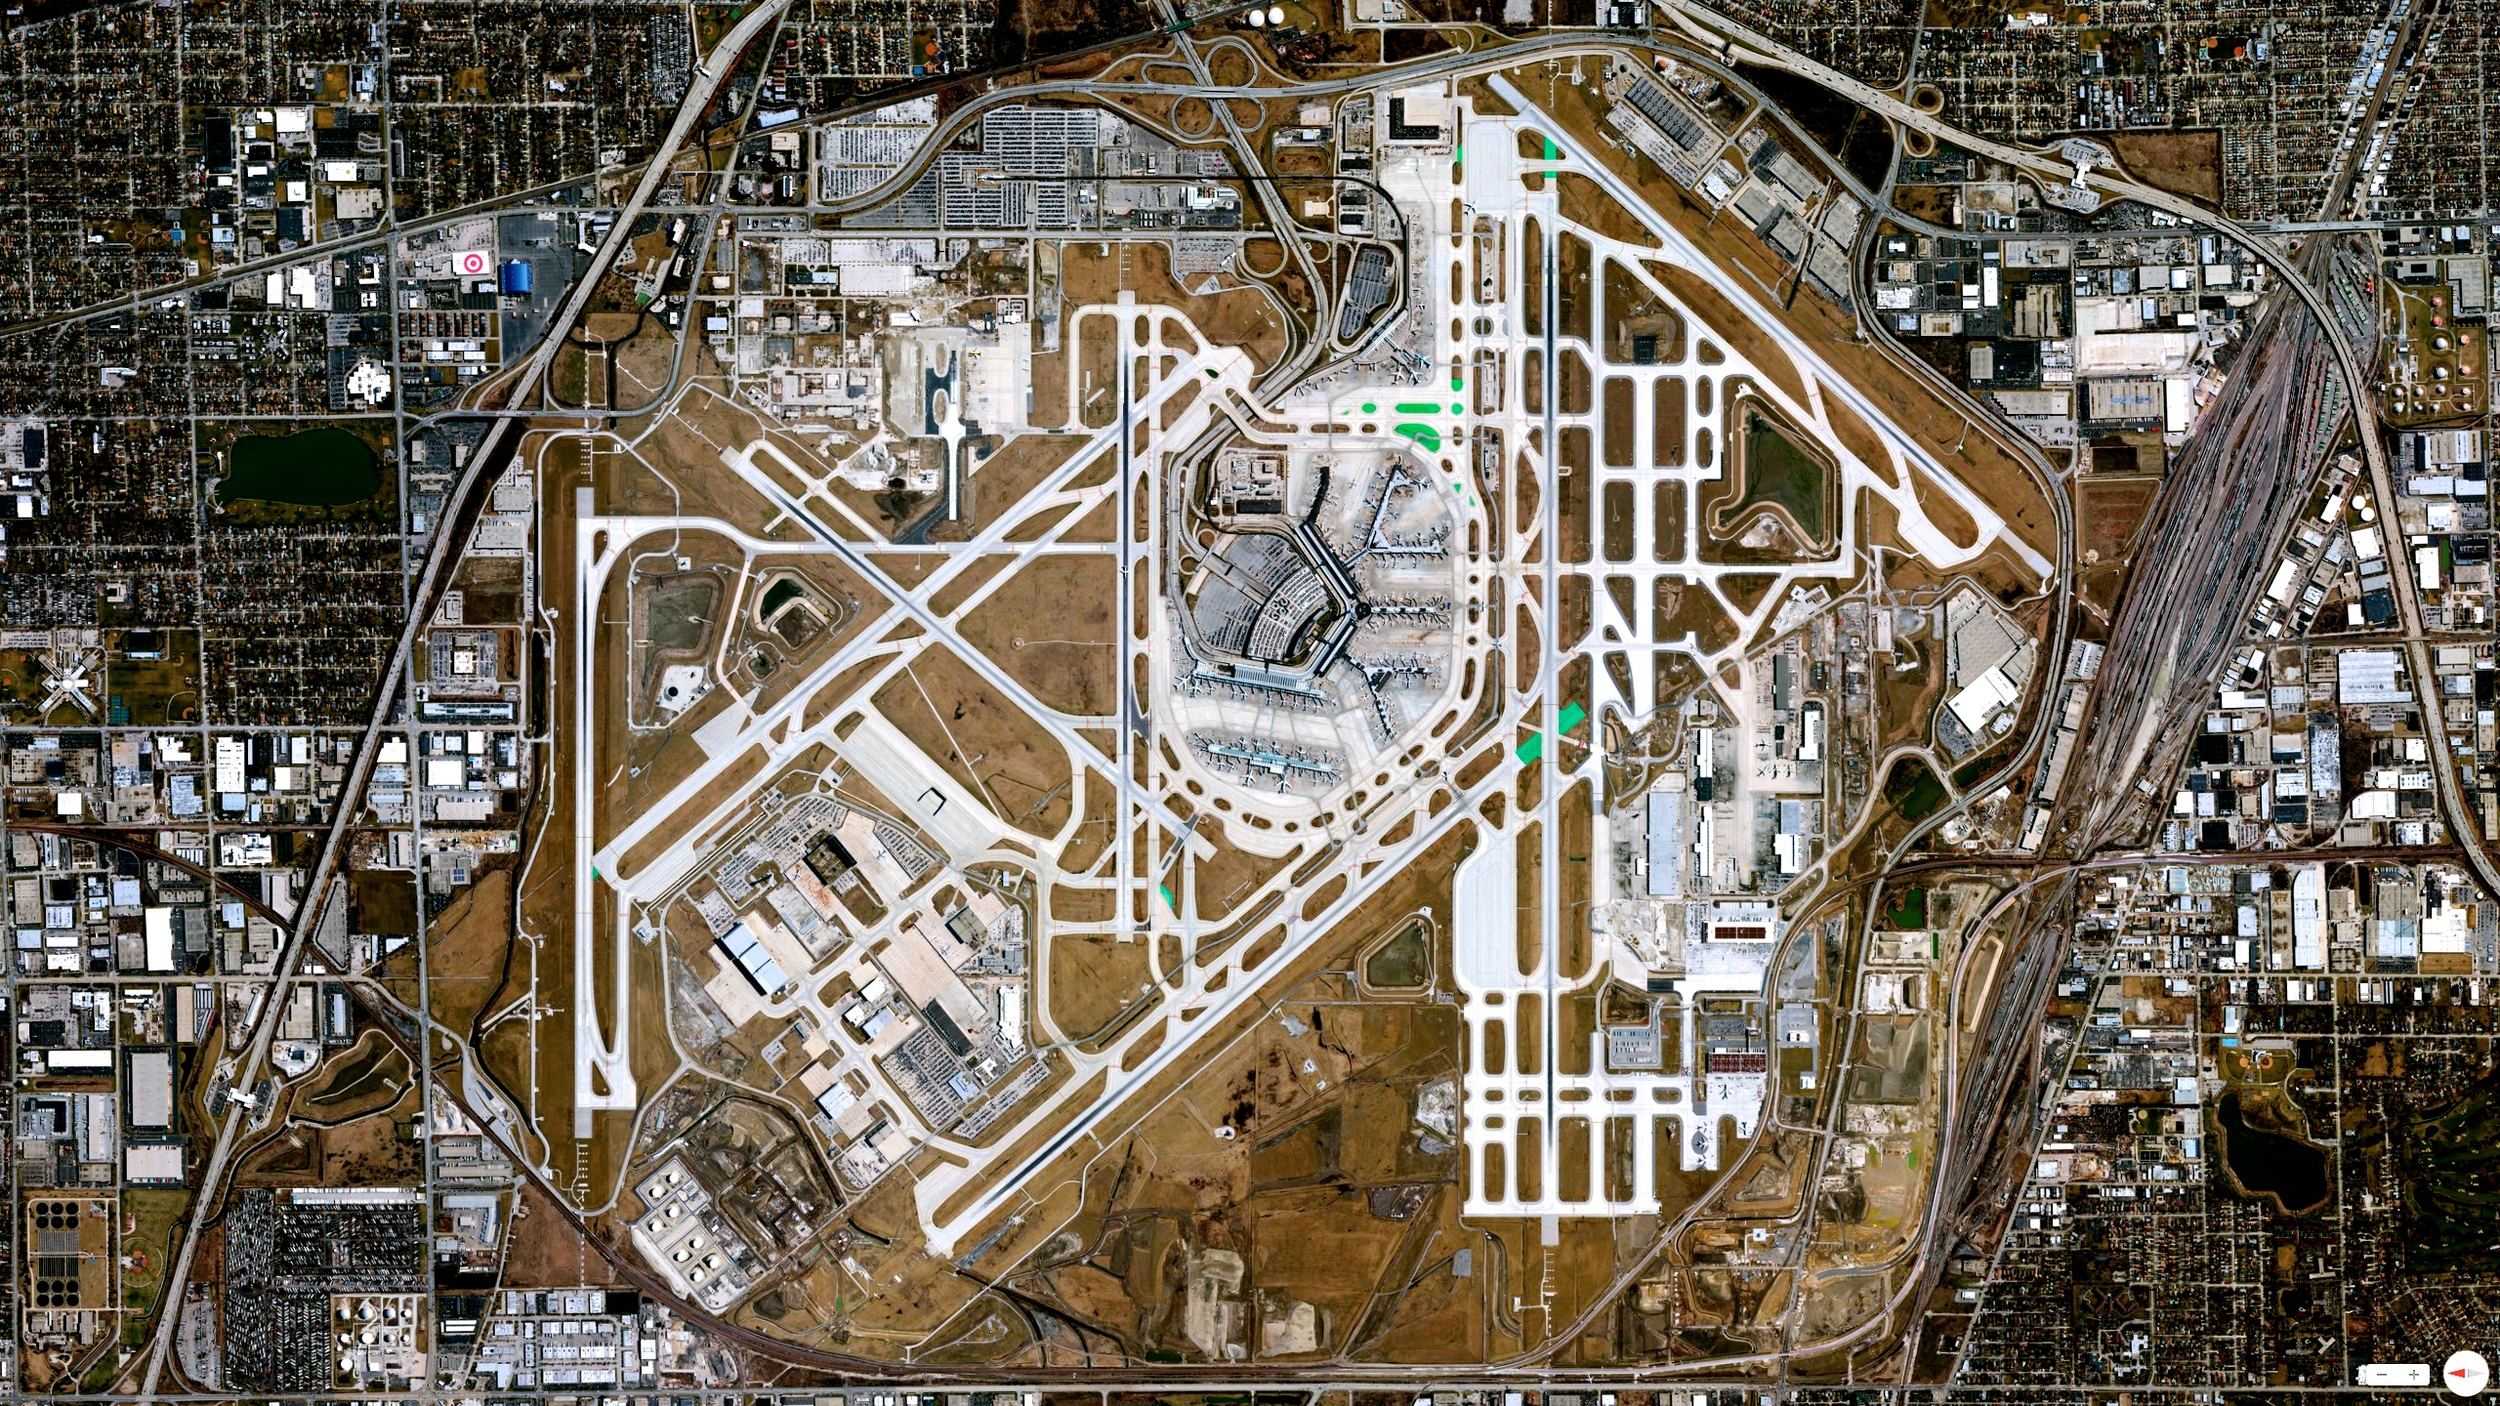 6/20/2014    Chicago O'Hare International Airport   Chicago, Illinois, USA   41°58′43″N 87°54′17″W